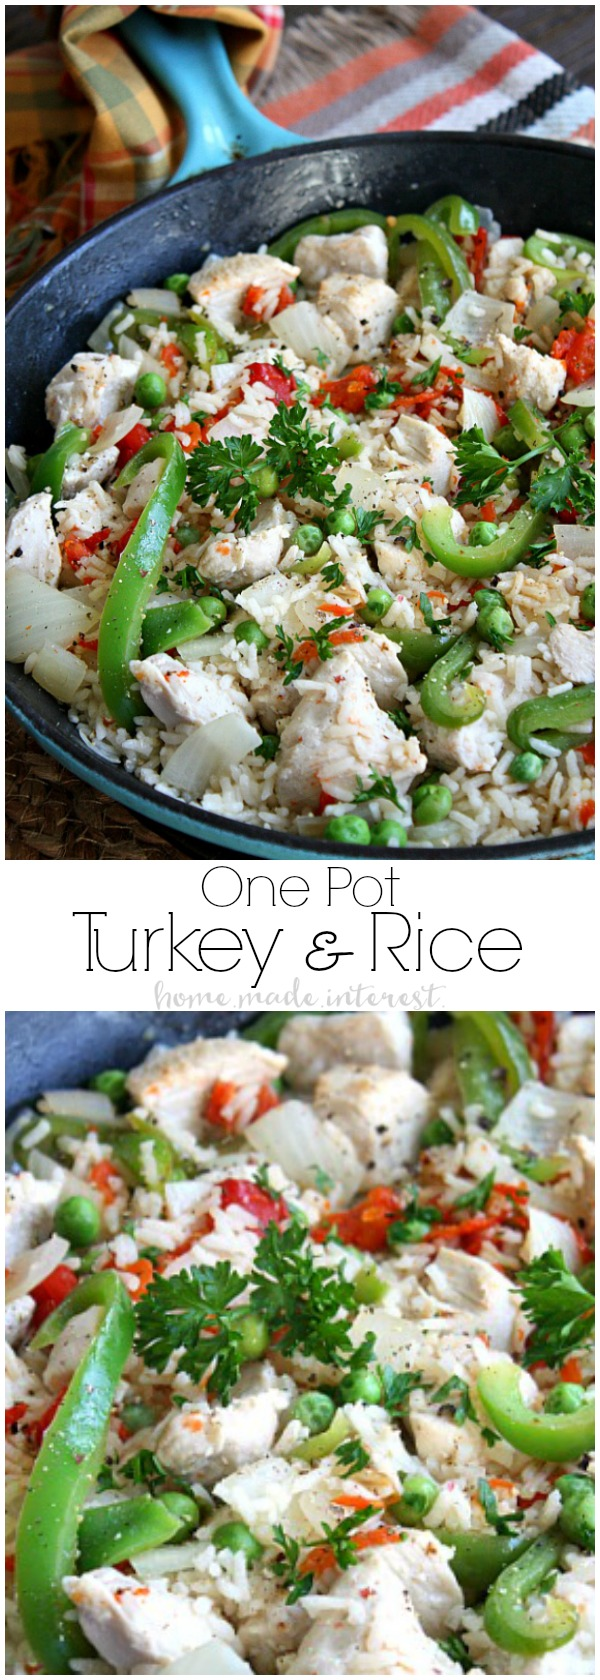 Need a Thanksgiving leftovers recipe? Or just a quick and easy weeknight dinner recipe? This One Pot Turkey and Rice is ready in less than 30 minutes and filled with everything you need for a complete meal, meat, vegetables, and rice! Your family will love this easy one pot meal.